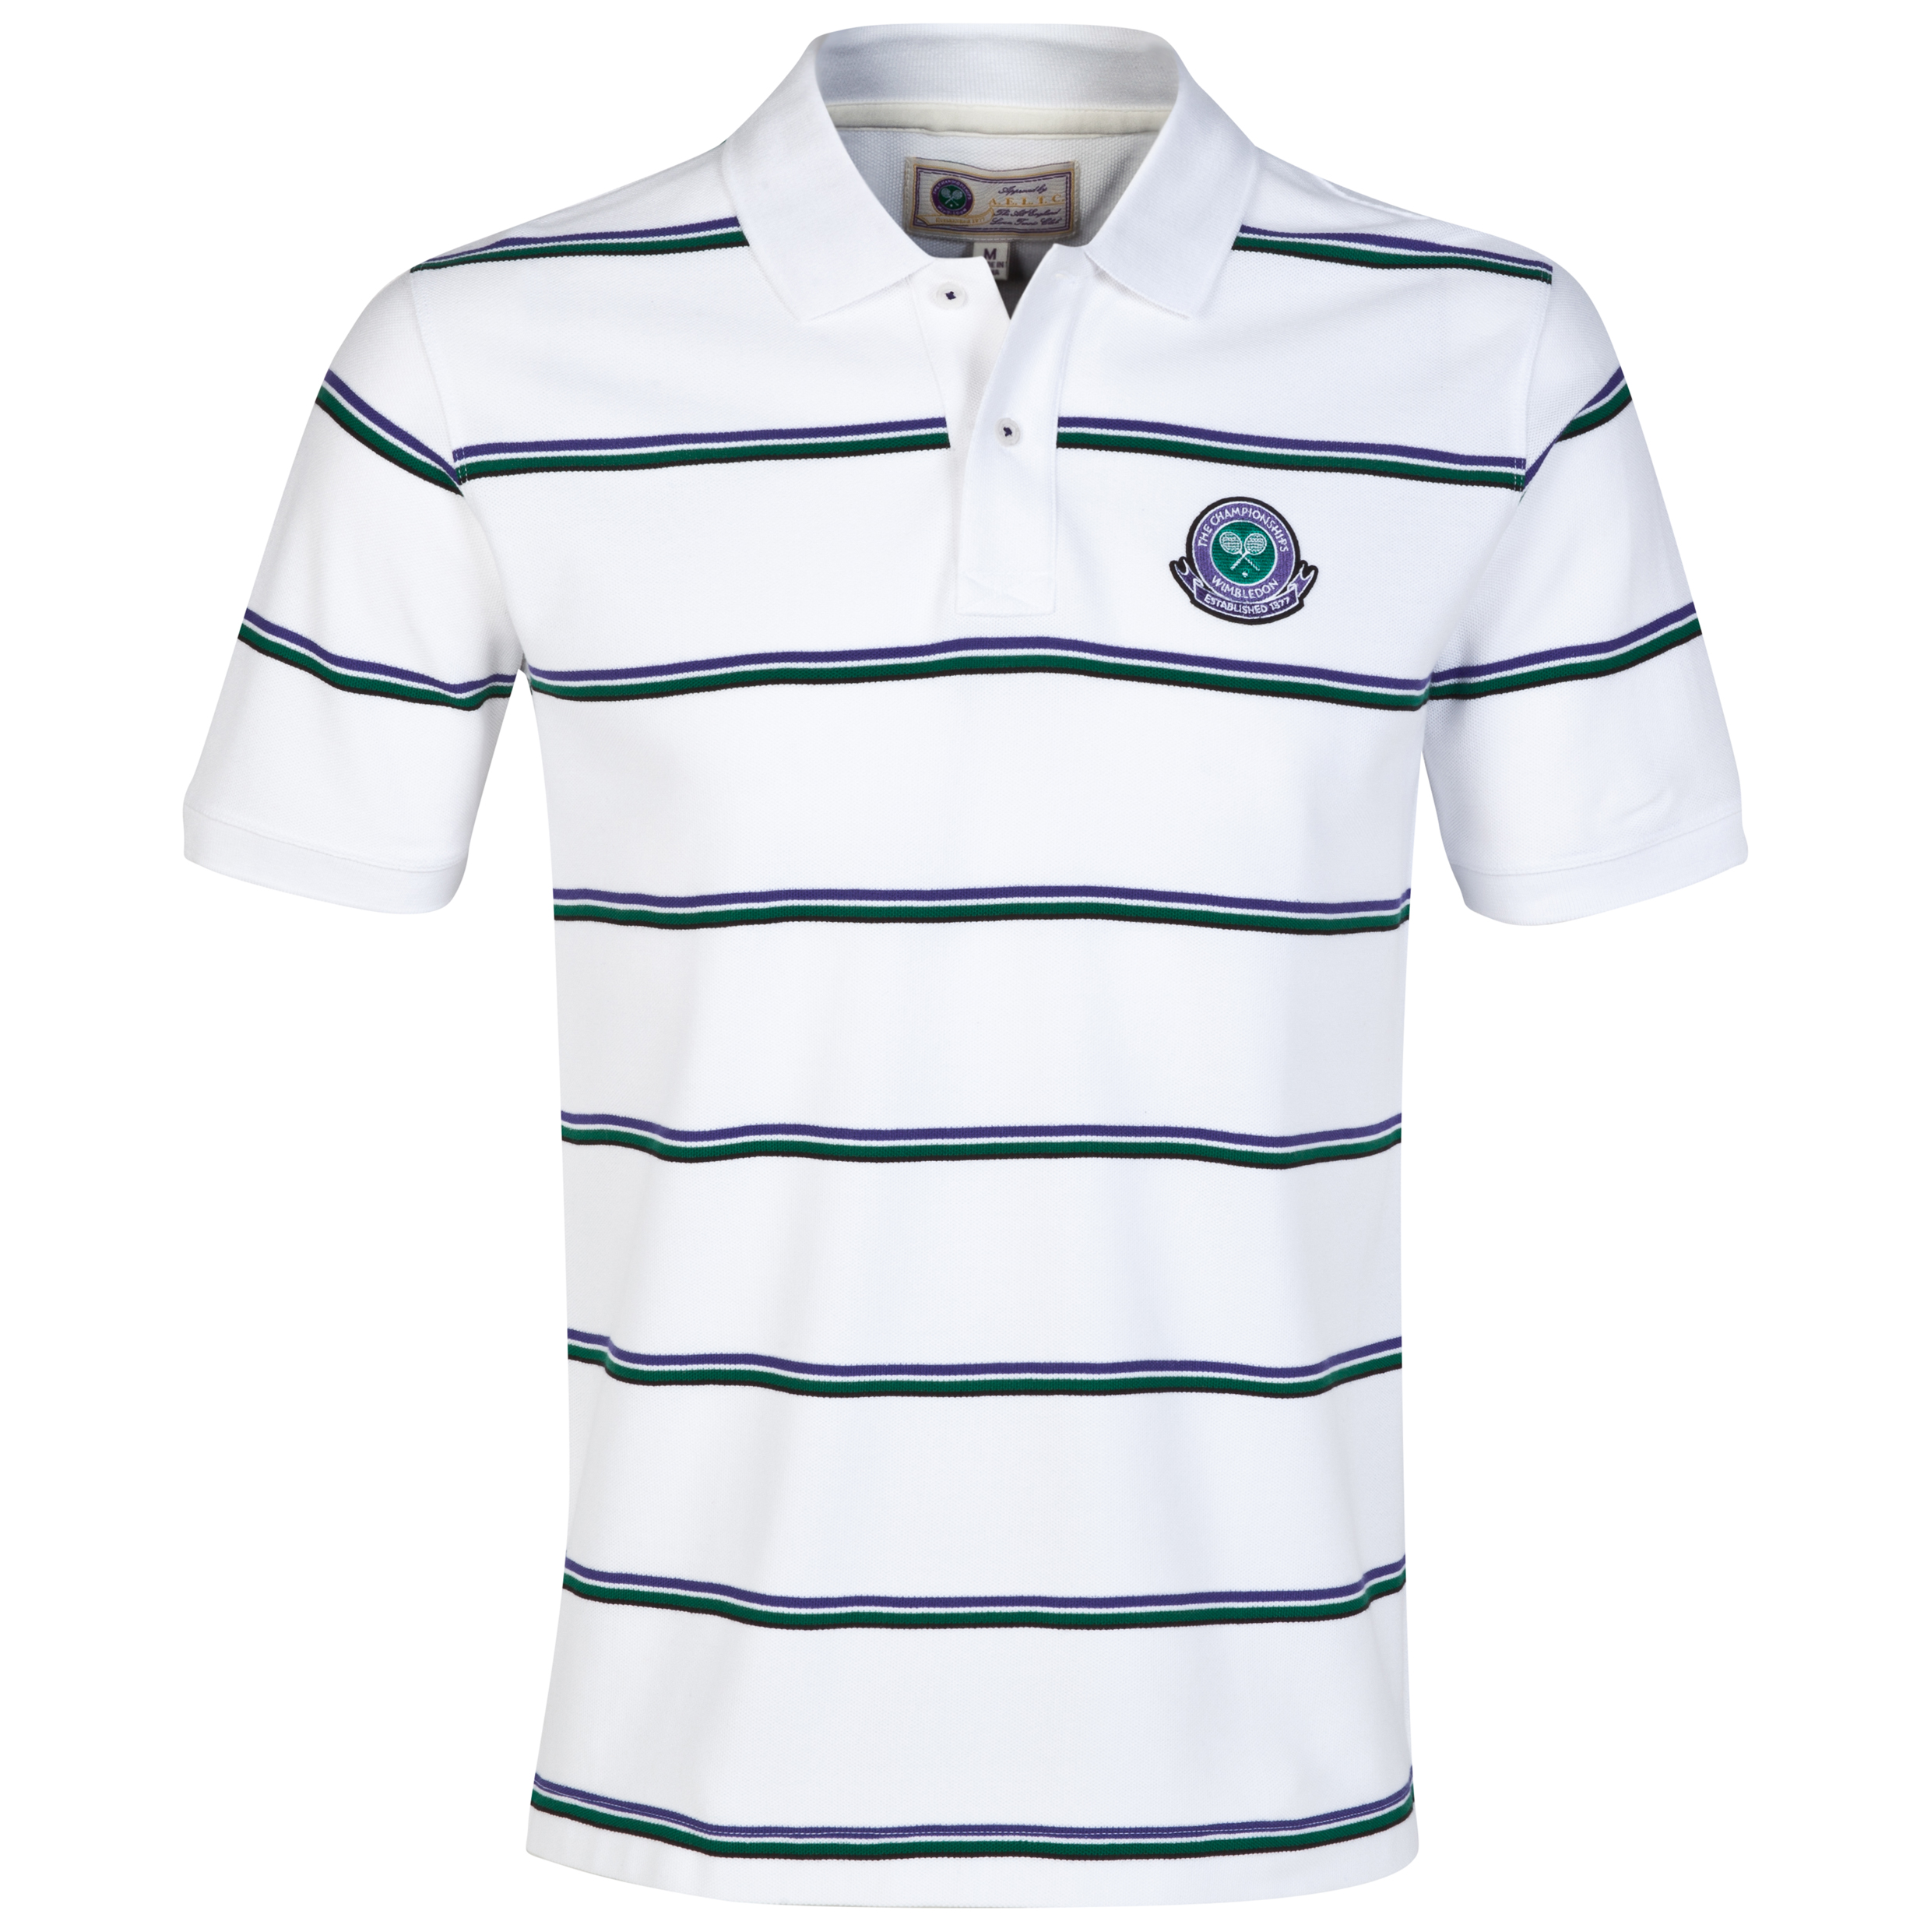 Wimbledon Jacquard Stripe Polo Shirt White